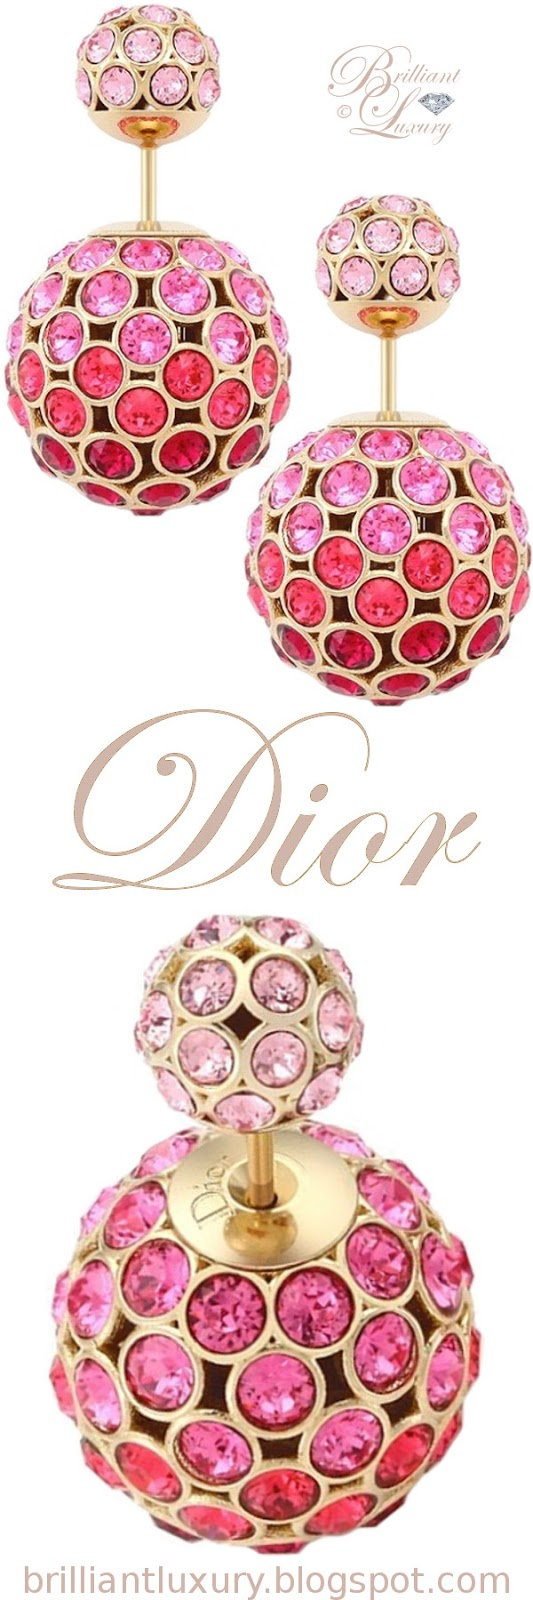 Brilliant Luxury ♦ Dior 'Mise en Dior' tribal-inspired earrings in pink